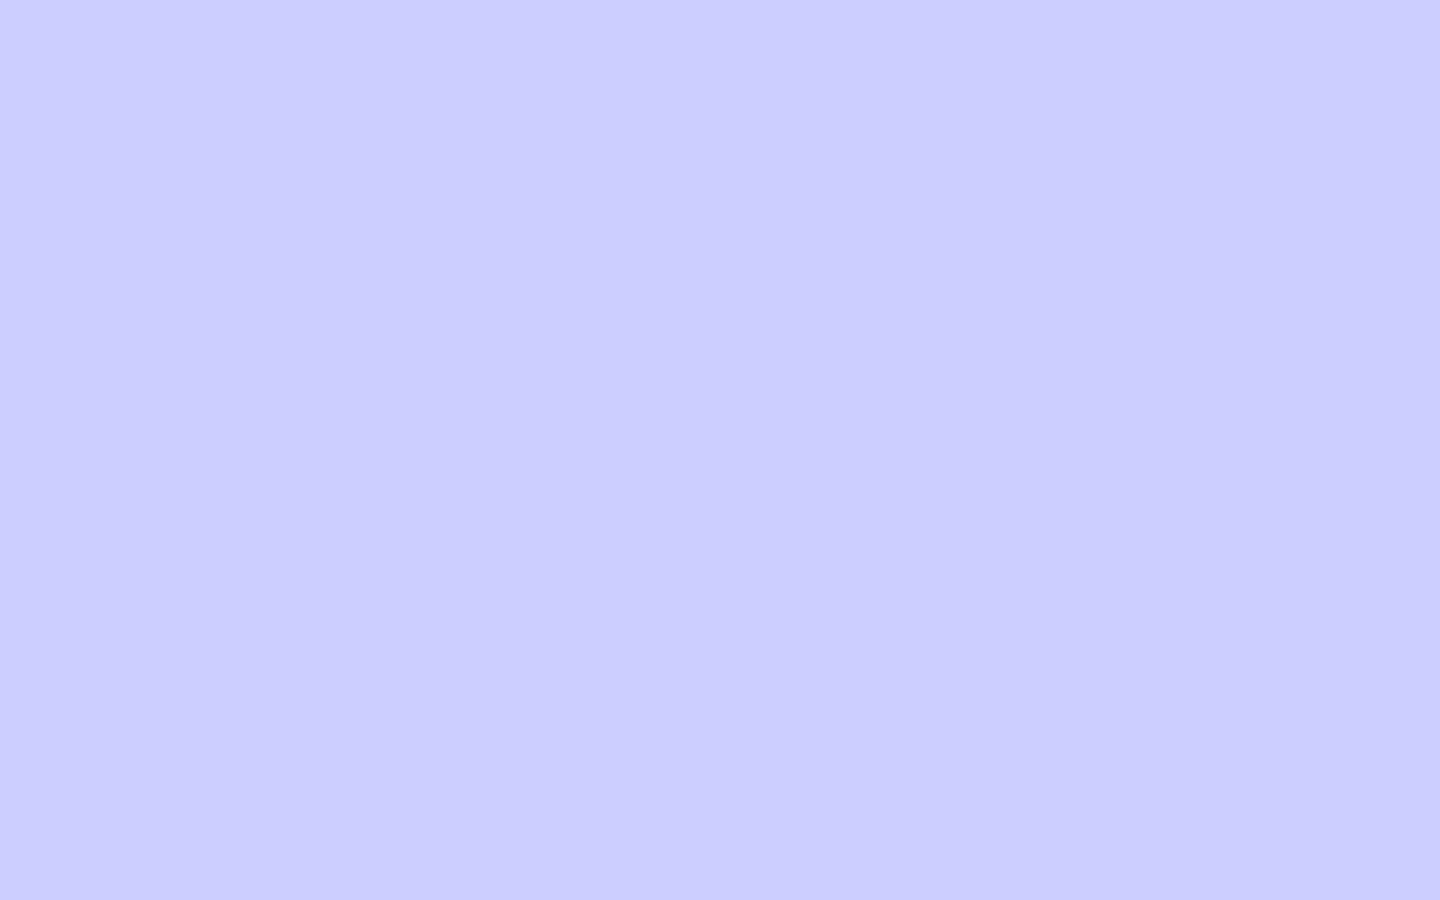 1440x900 Lavender Blue Solid Color Background